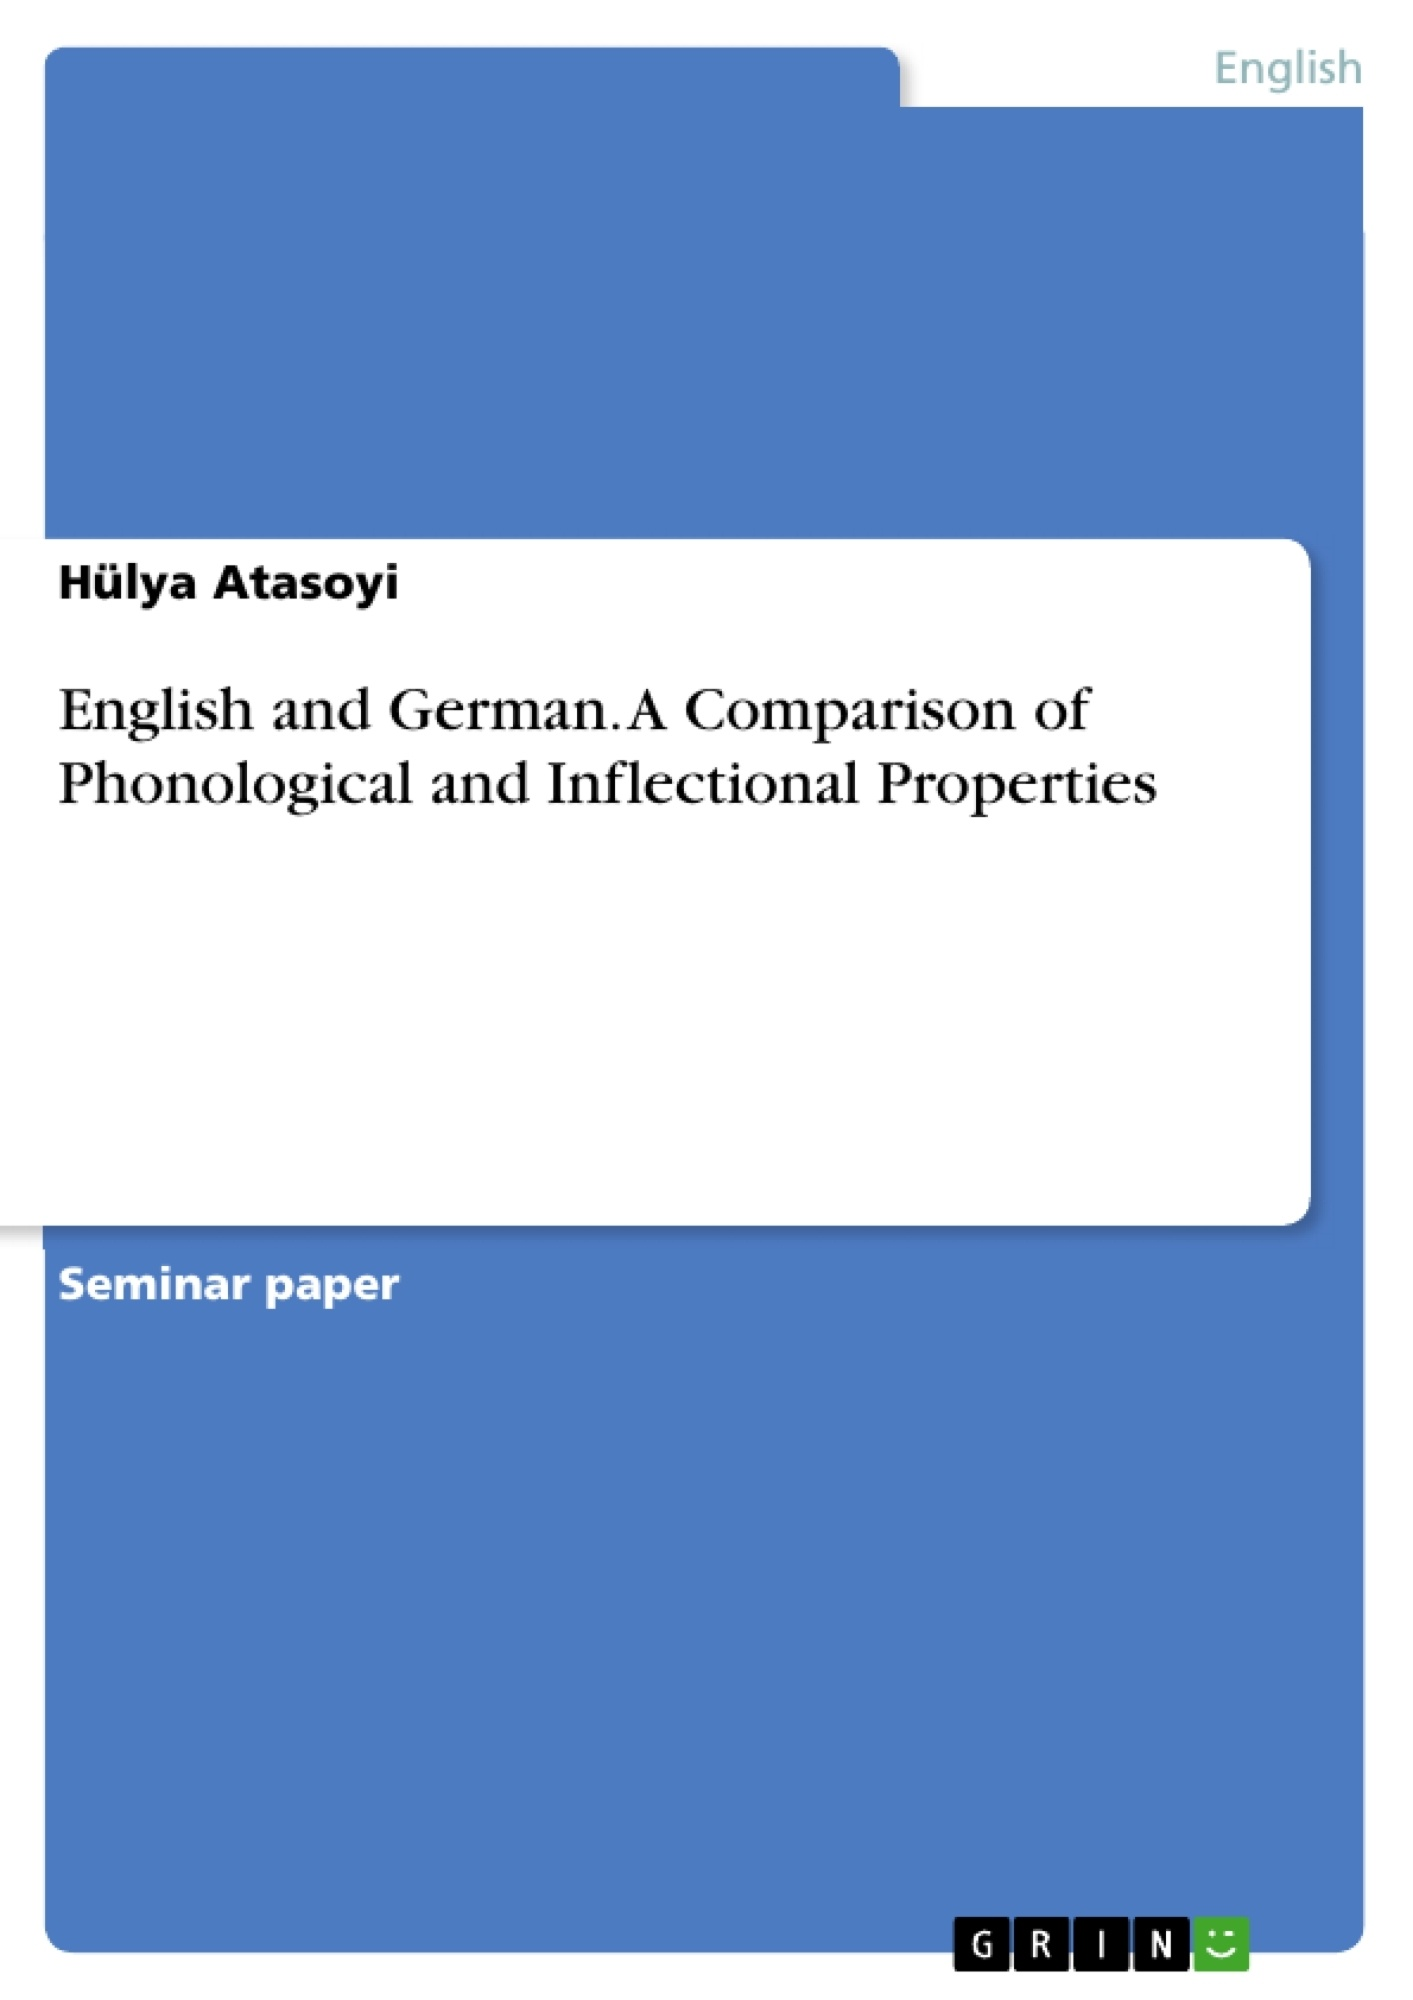 Title: English and German. A Comparison of Phonological and Inflectional Properties